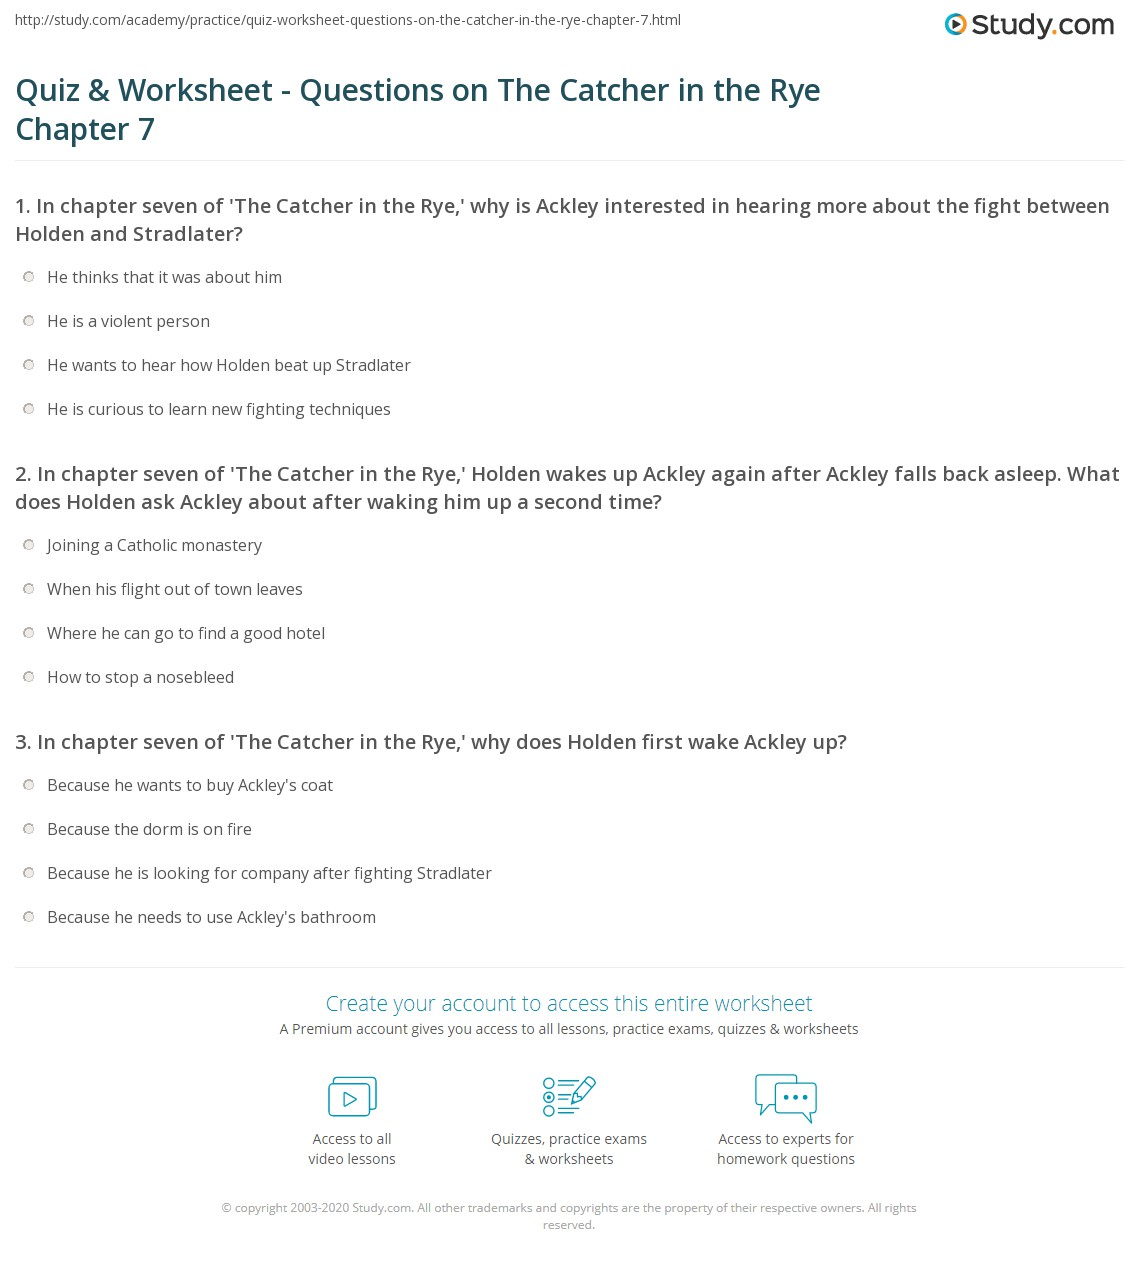 quiz worksheet questions on the catcher in the rye chapter  in chapter seven of the catcher in the rye holden wakes up ackley again after ackley falls back asleep what does holden ask ackley about after waking